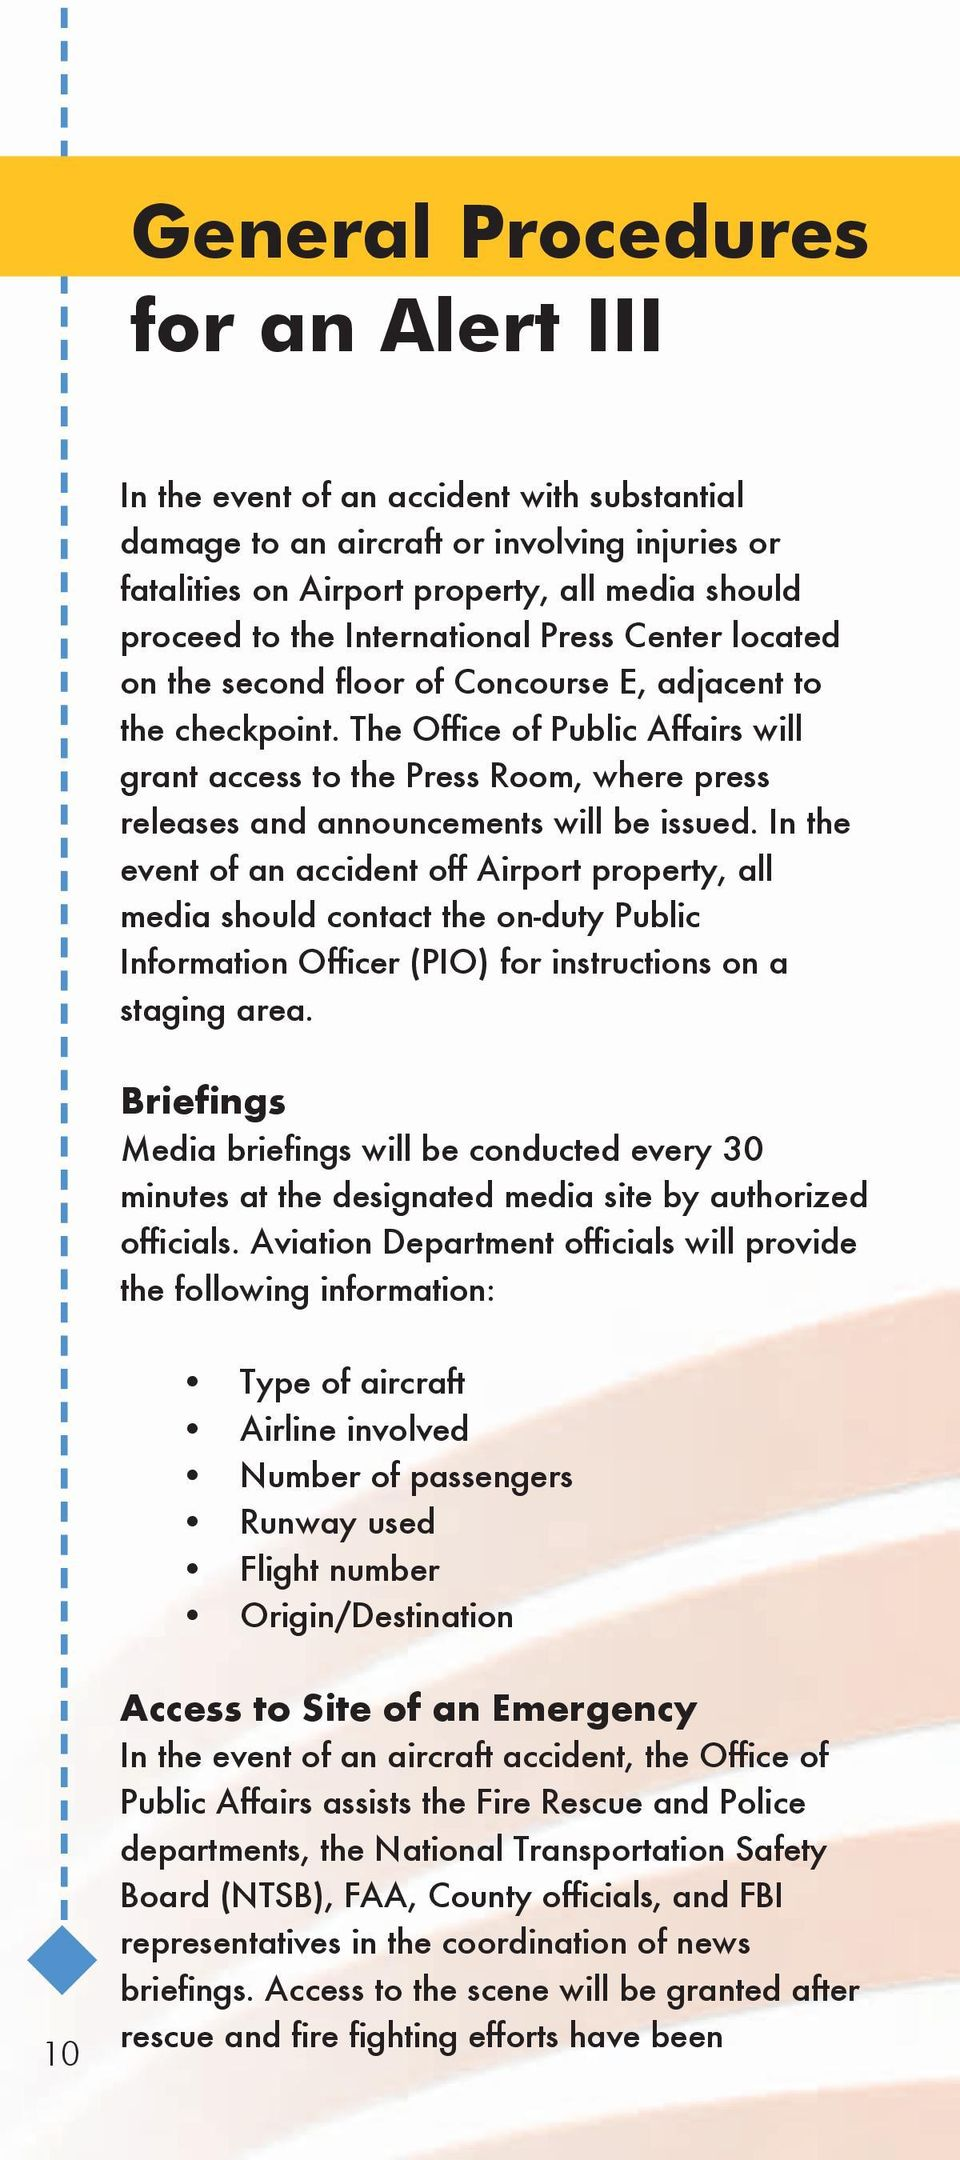 The Office of Public Affairs will grant access to the Press Room, where press releases and announcements will be issued.